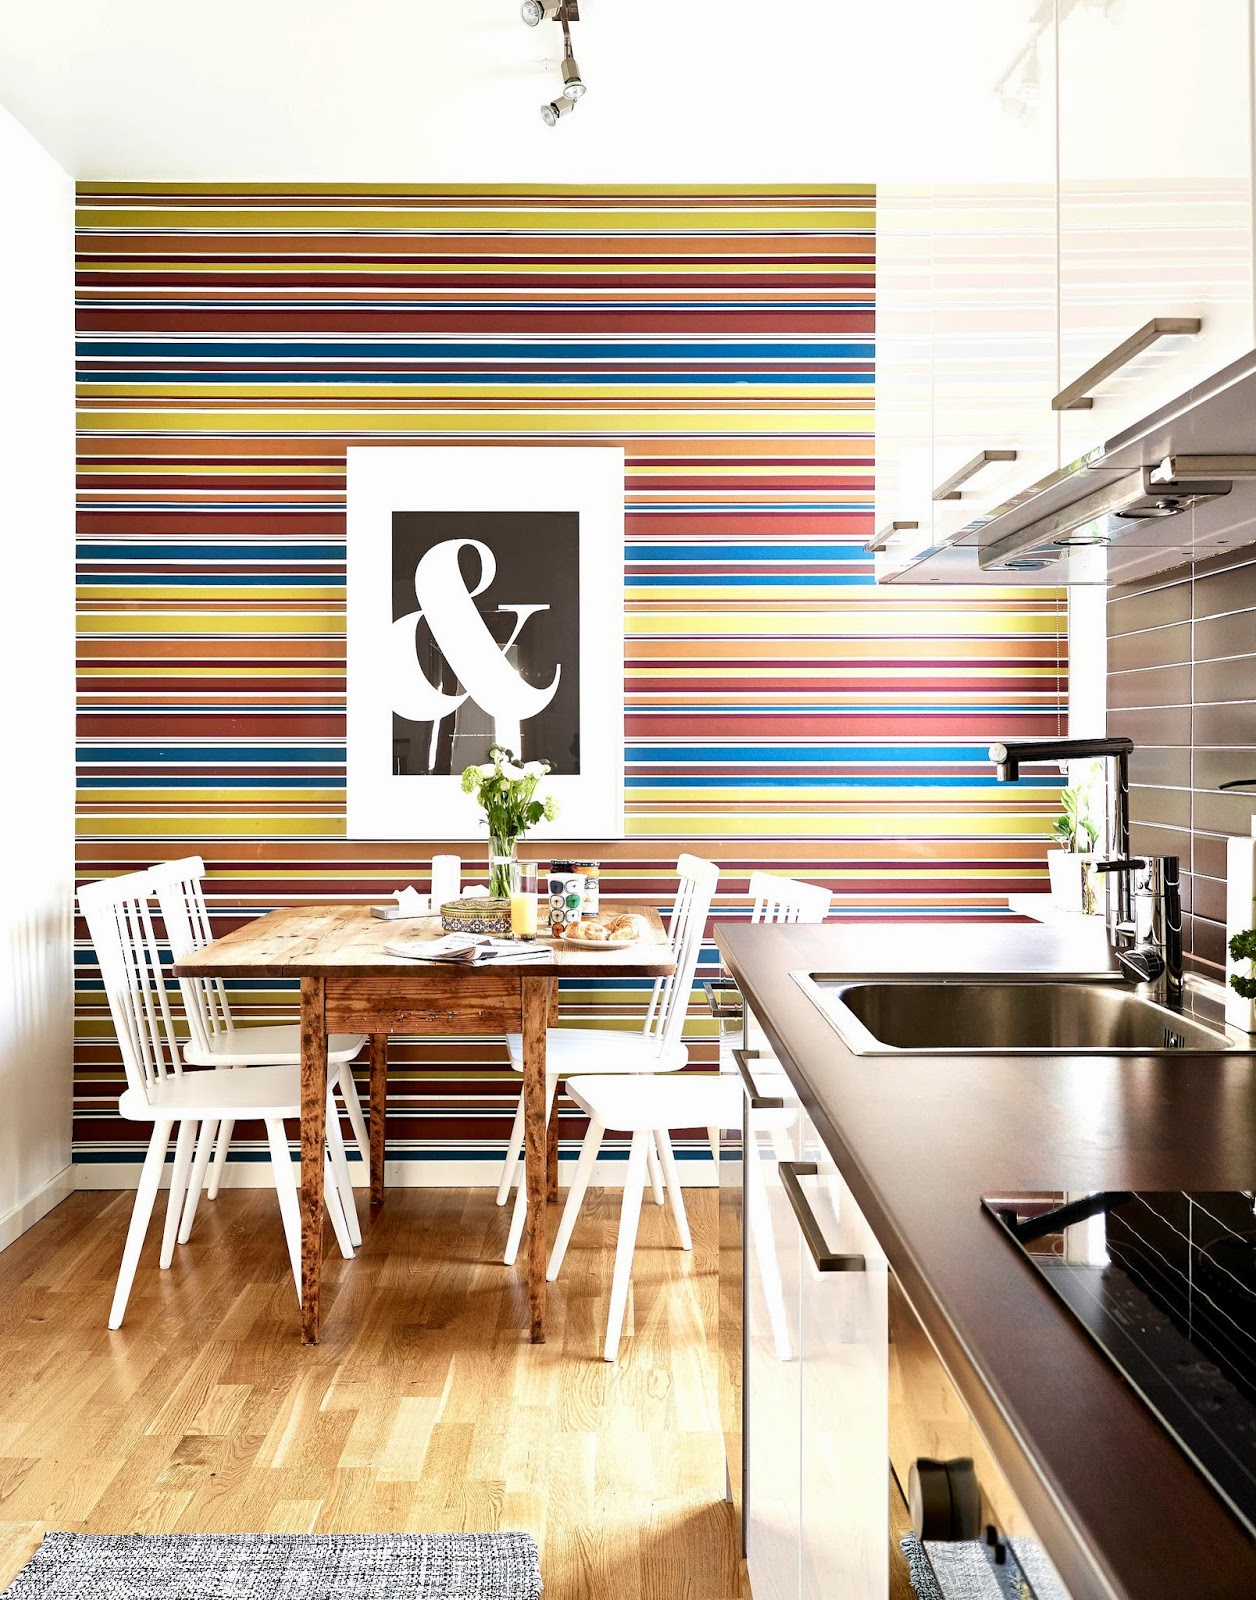 Kitchen wallpaper stripes - In This Case I Am Going To Go Against My Usual All White Inclinations And Say I Like The First Kitchen Best